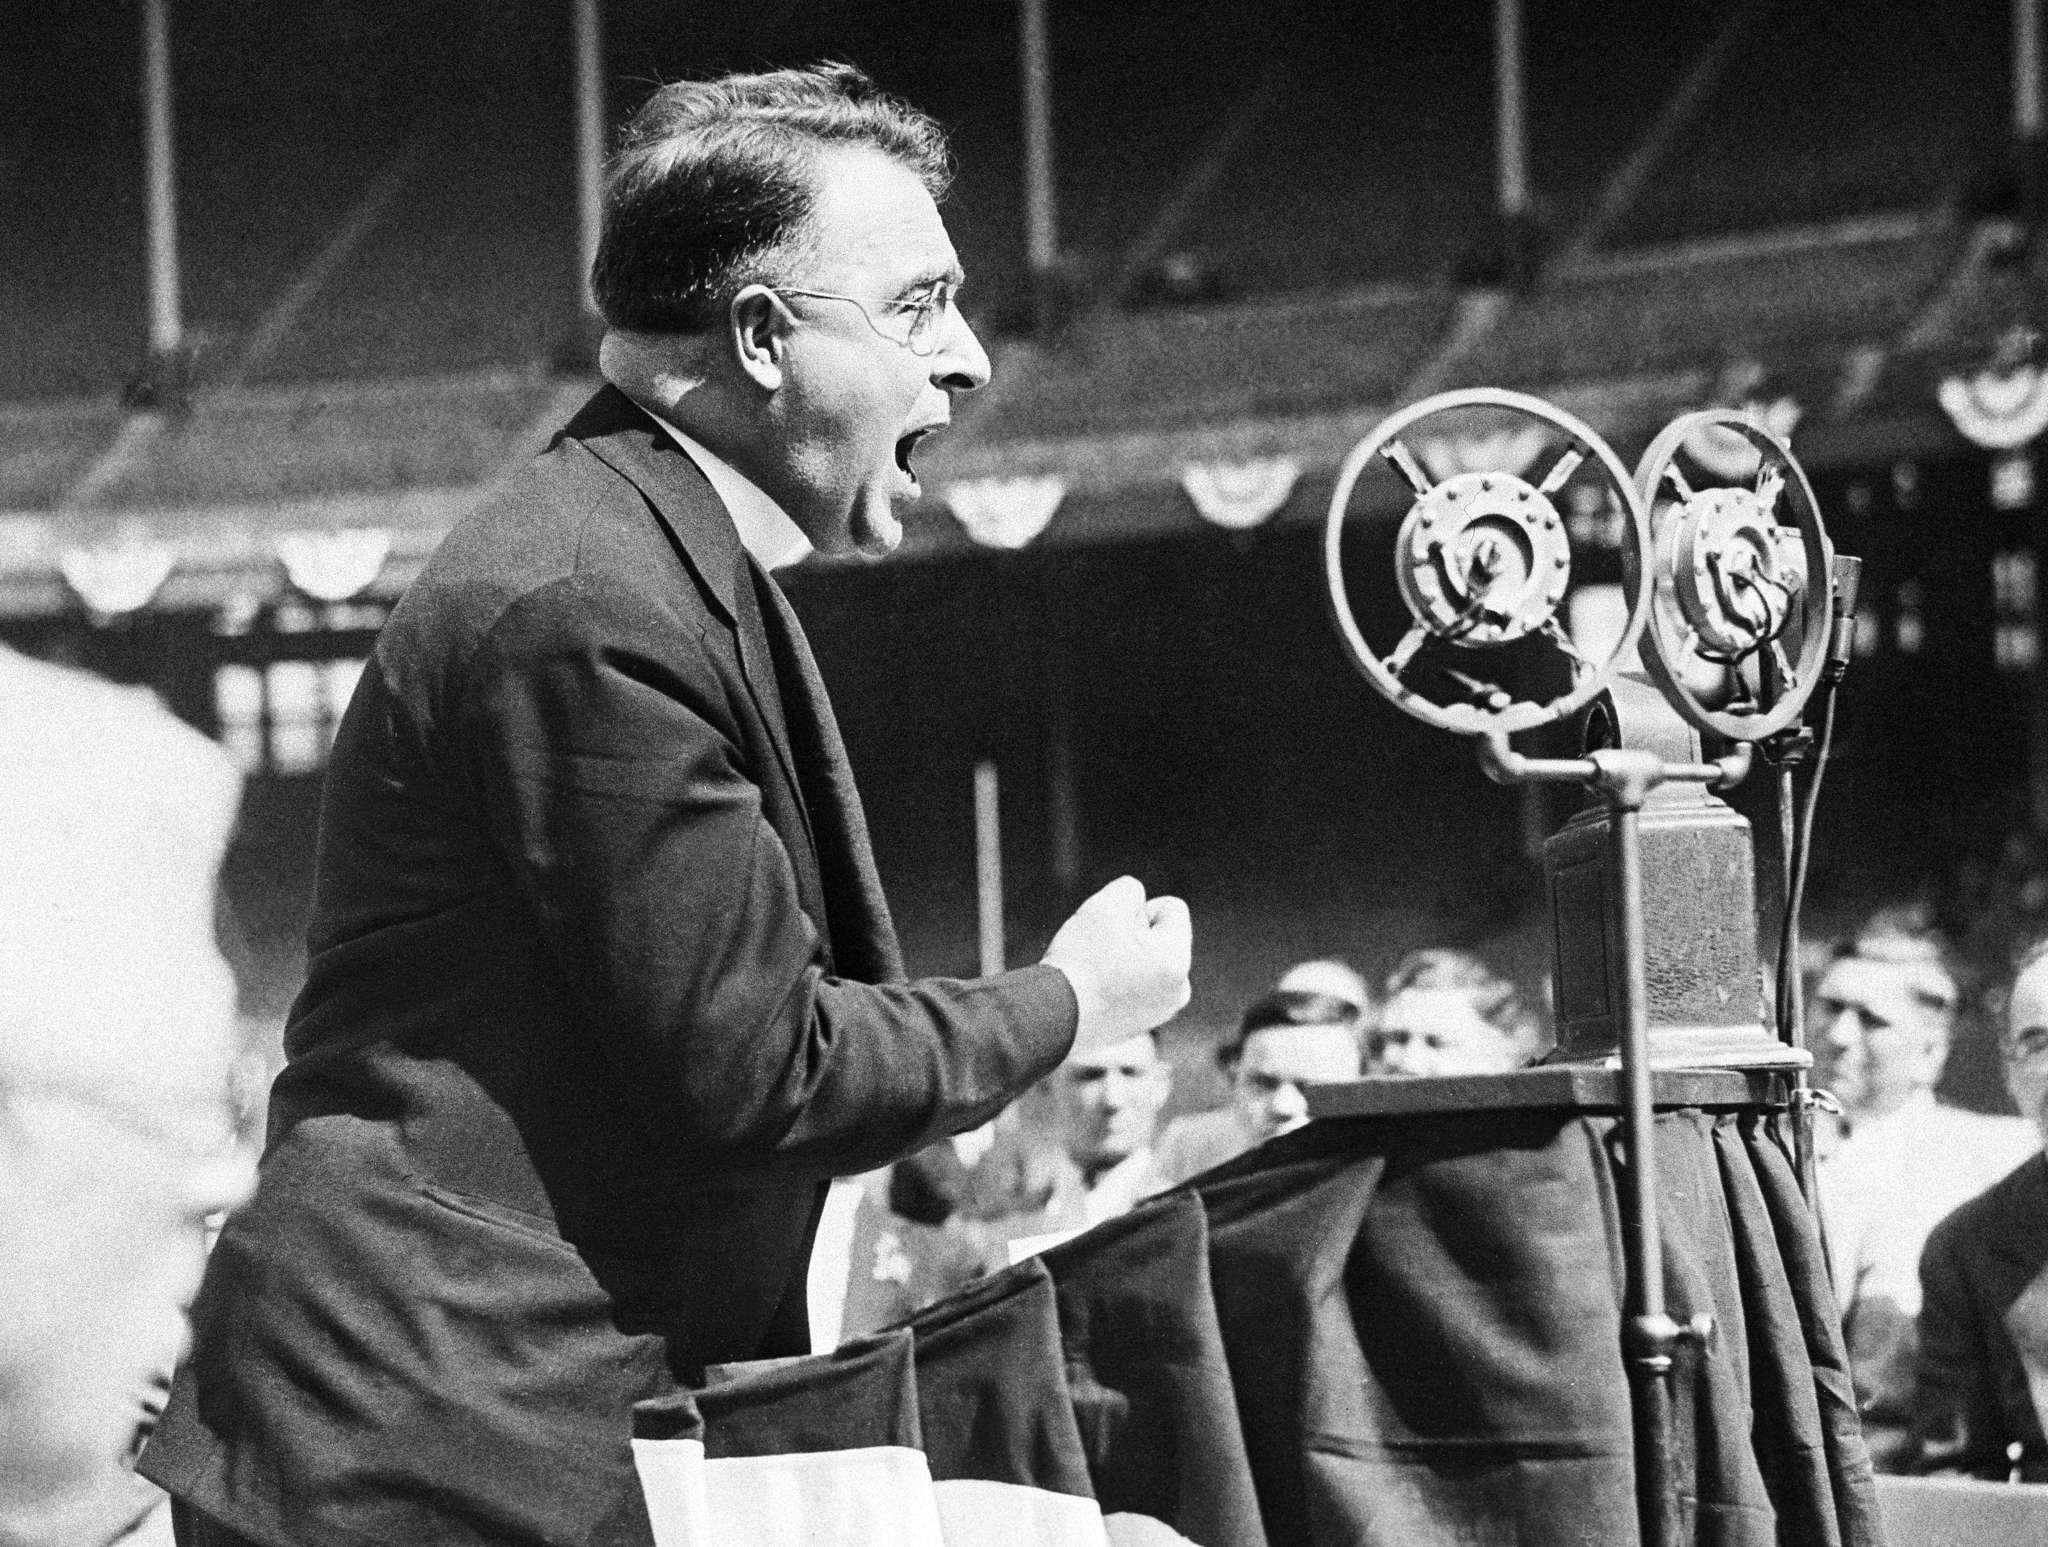 The Rev. Charles E. Coughlin of Detroit, Mich., is shown as he addressed a mass meeting of his followers in Cleveland, Ohio, May 11, 1936. He pleaded fro the support of the N.U.S.J. candidates in Tuesday's Ohio primary. (AP Photo)